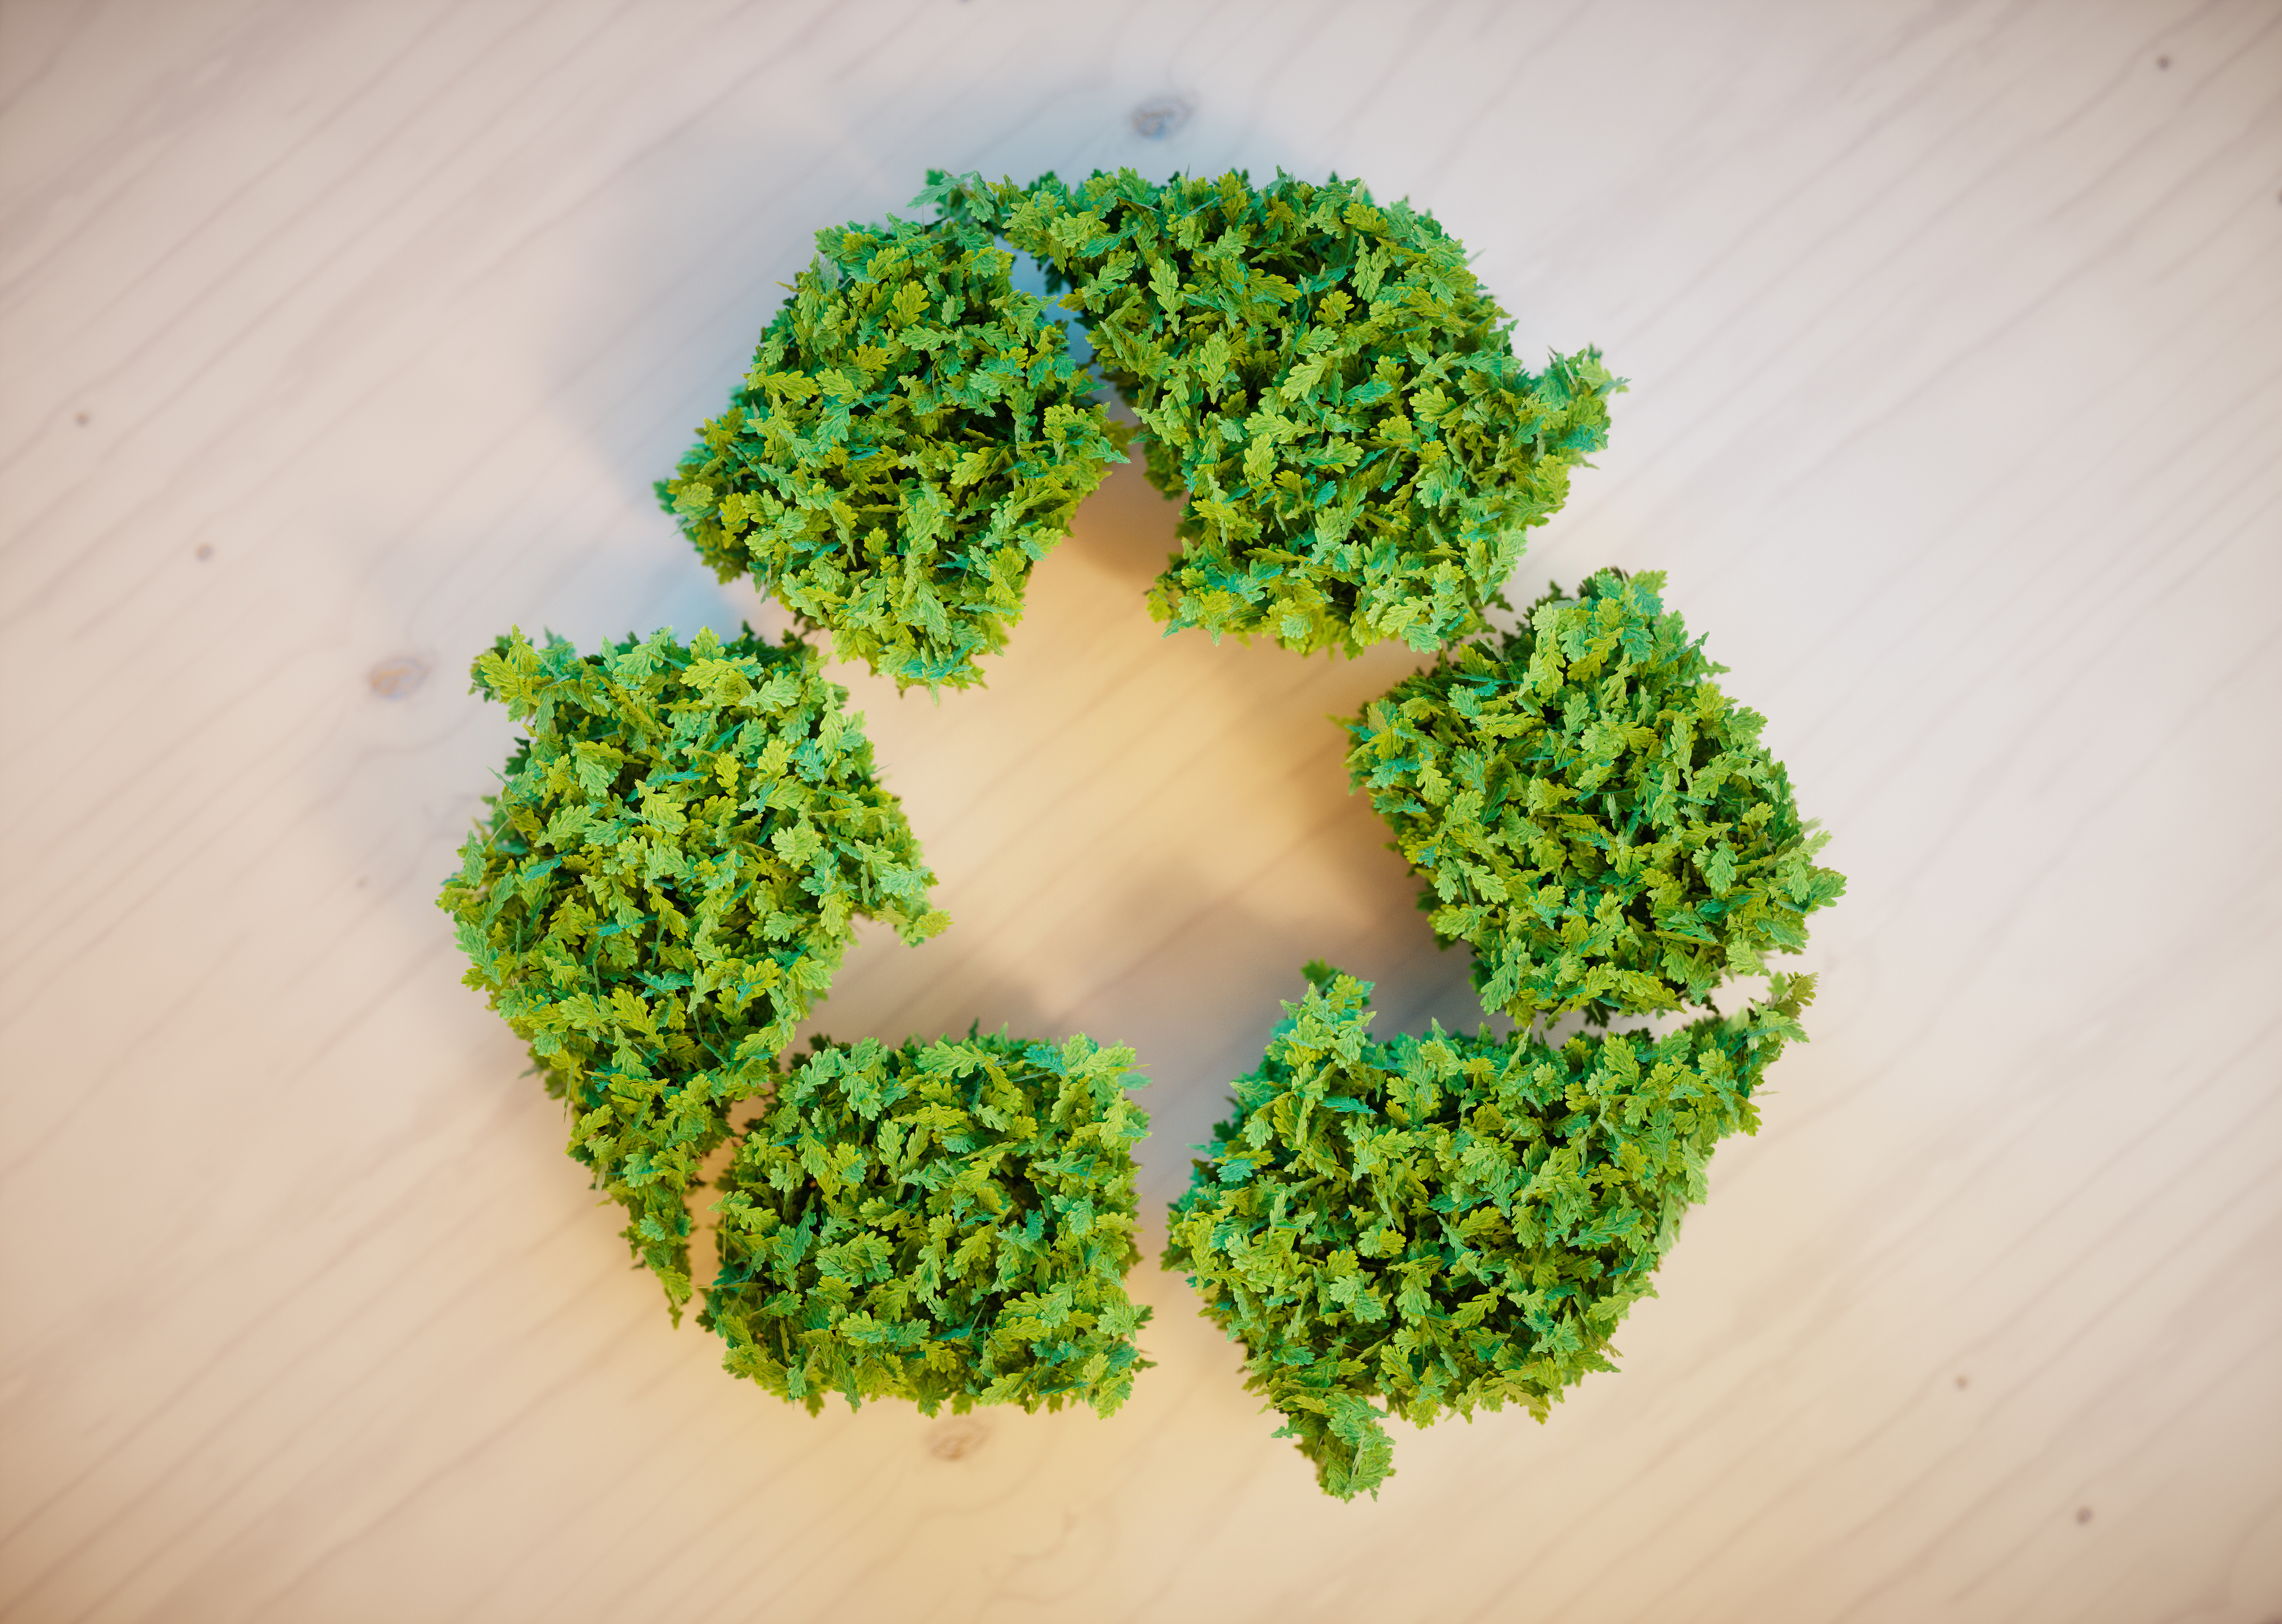 Image: Sustainable Design and Environmental Contributions